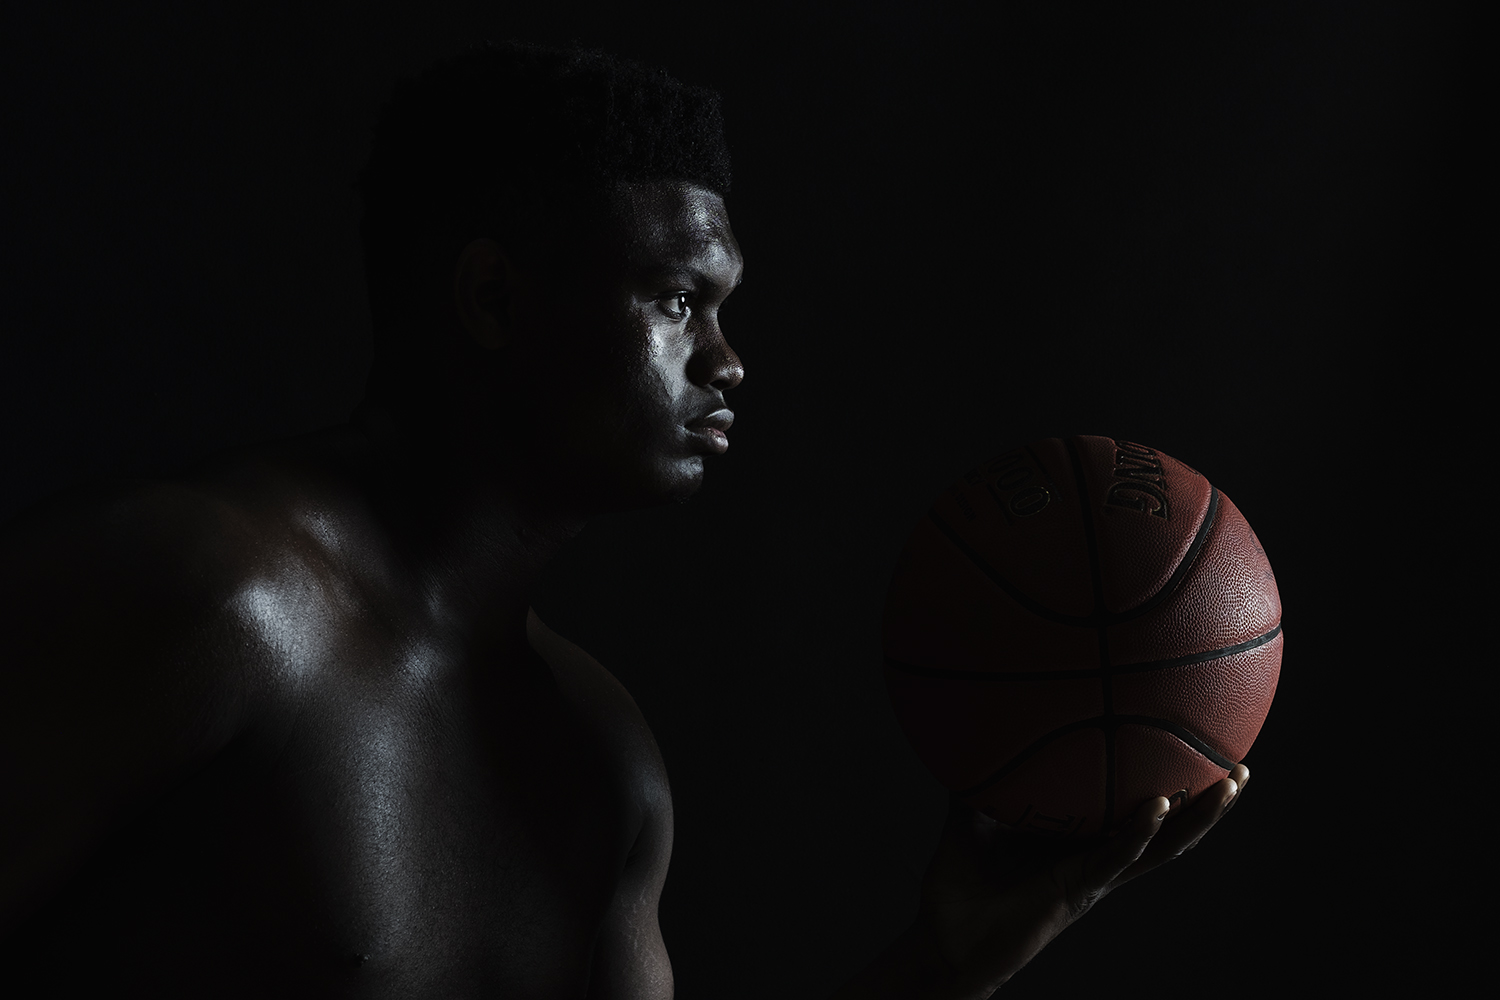 Ian Curcio photographs NBA star Zion Williamson portrait with a basketball